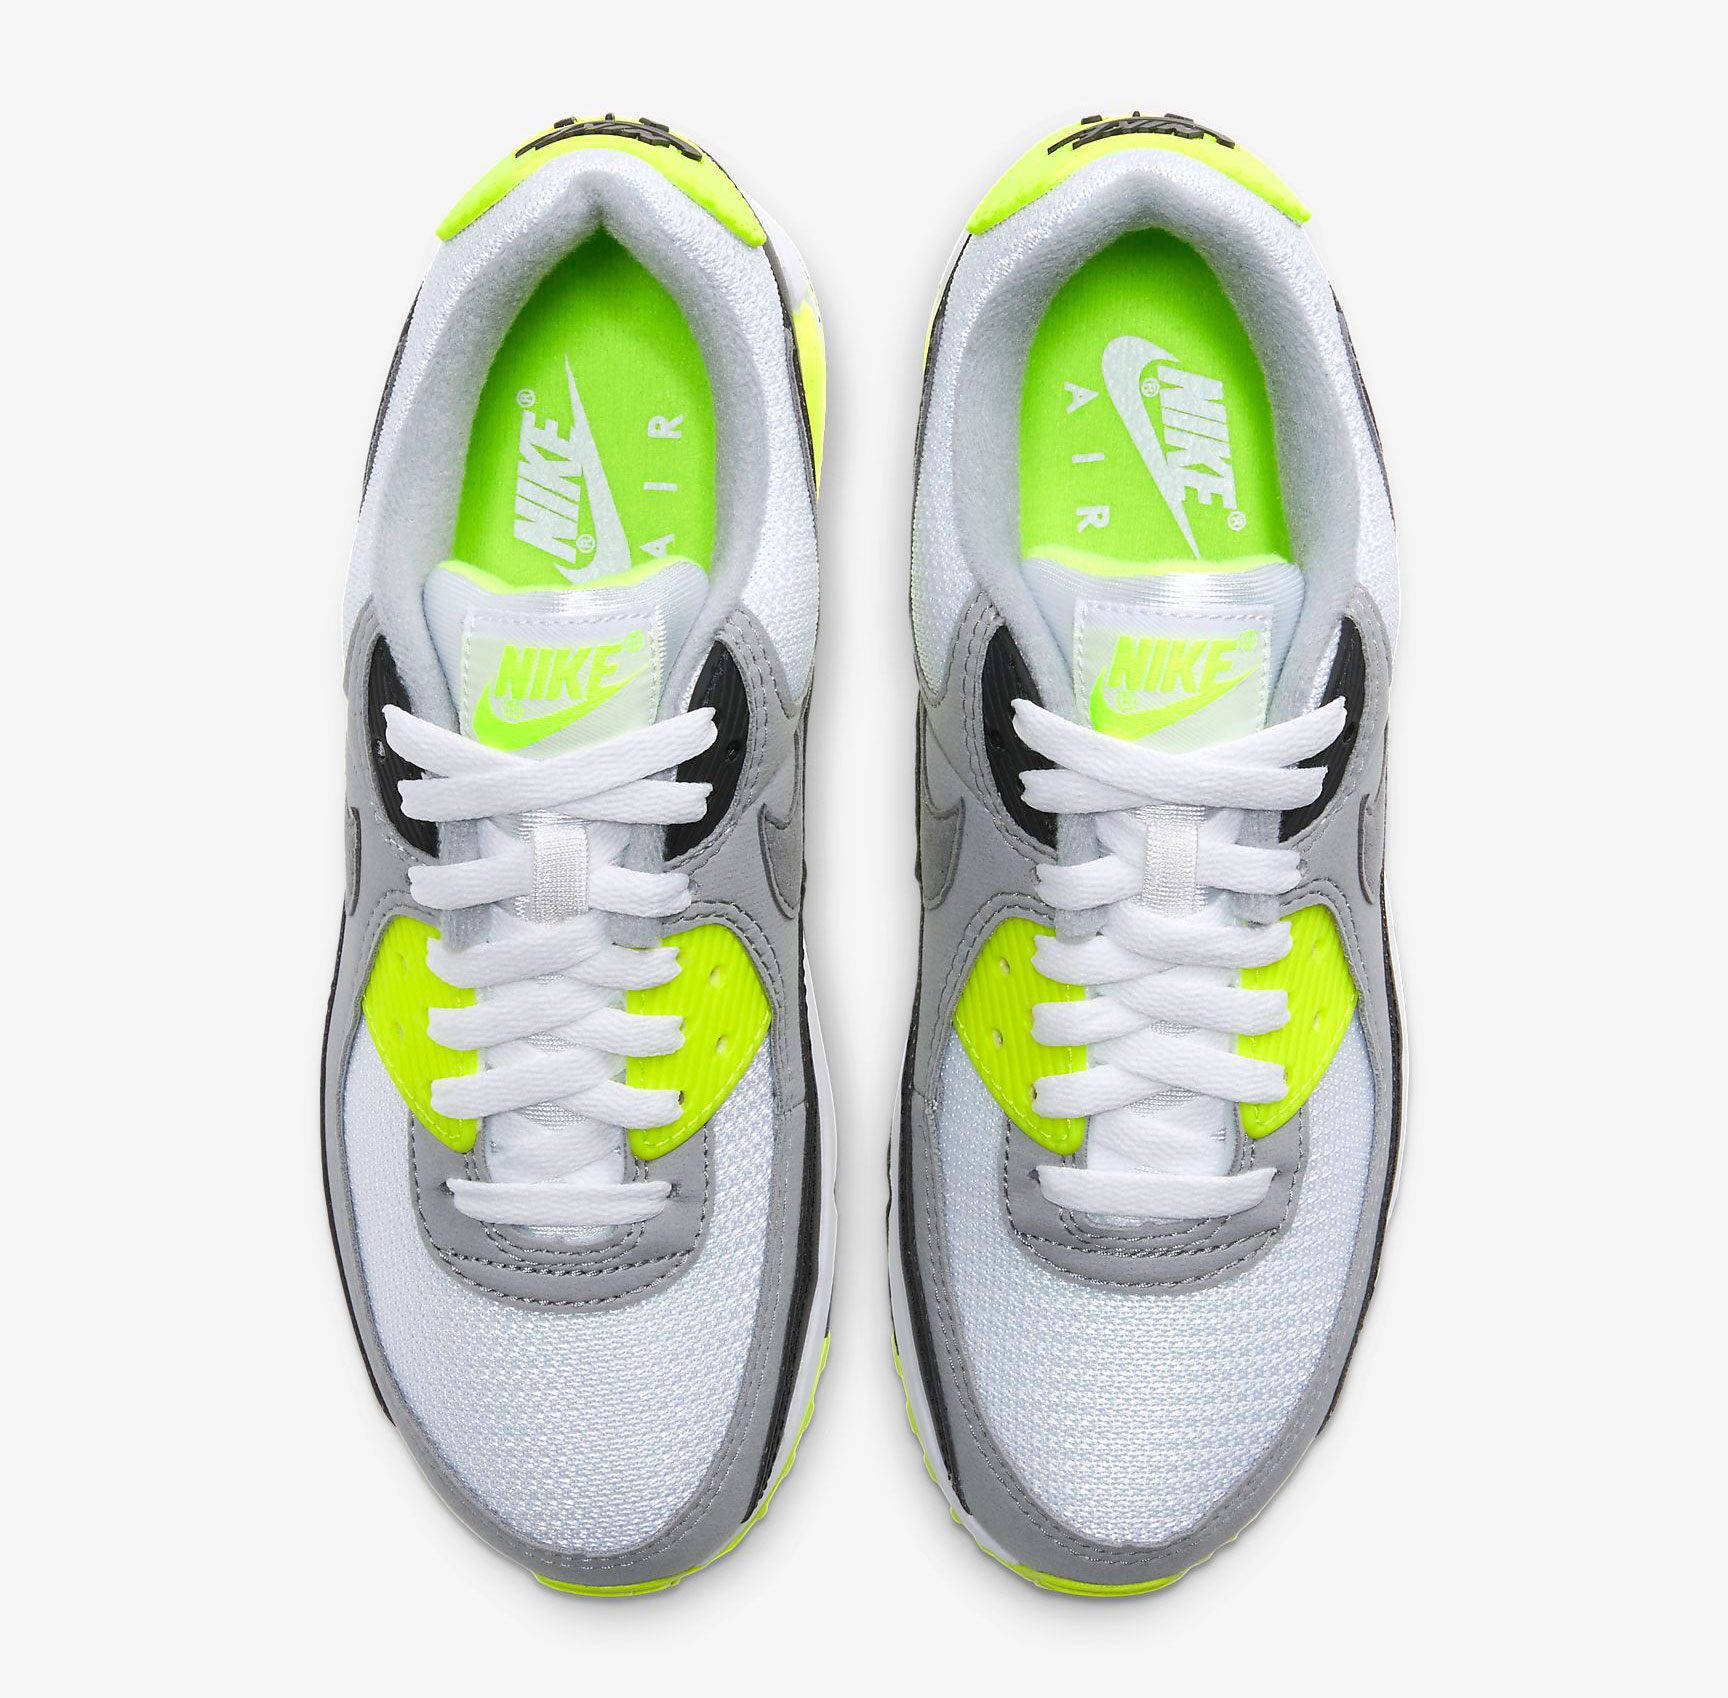 nike-air-max-90-og-volt-grey-4